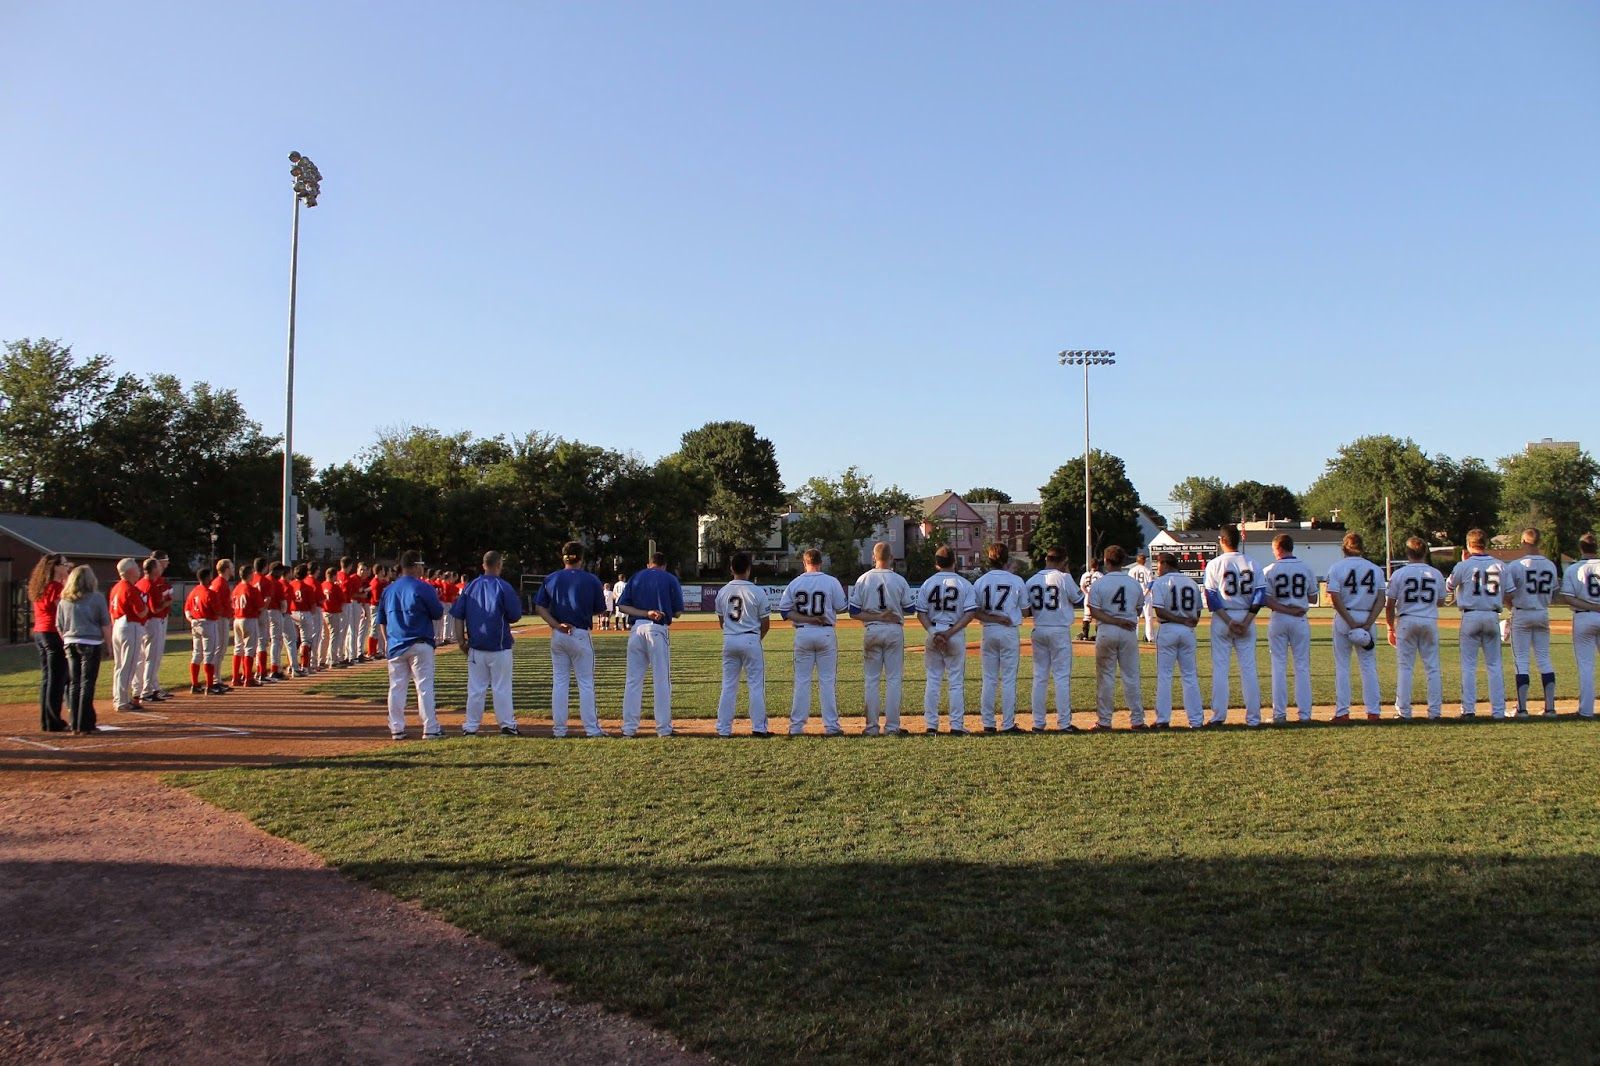 Watertown And Cooperstown Out, Saugerties And Victor In PGCBL